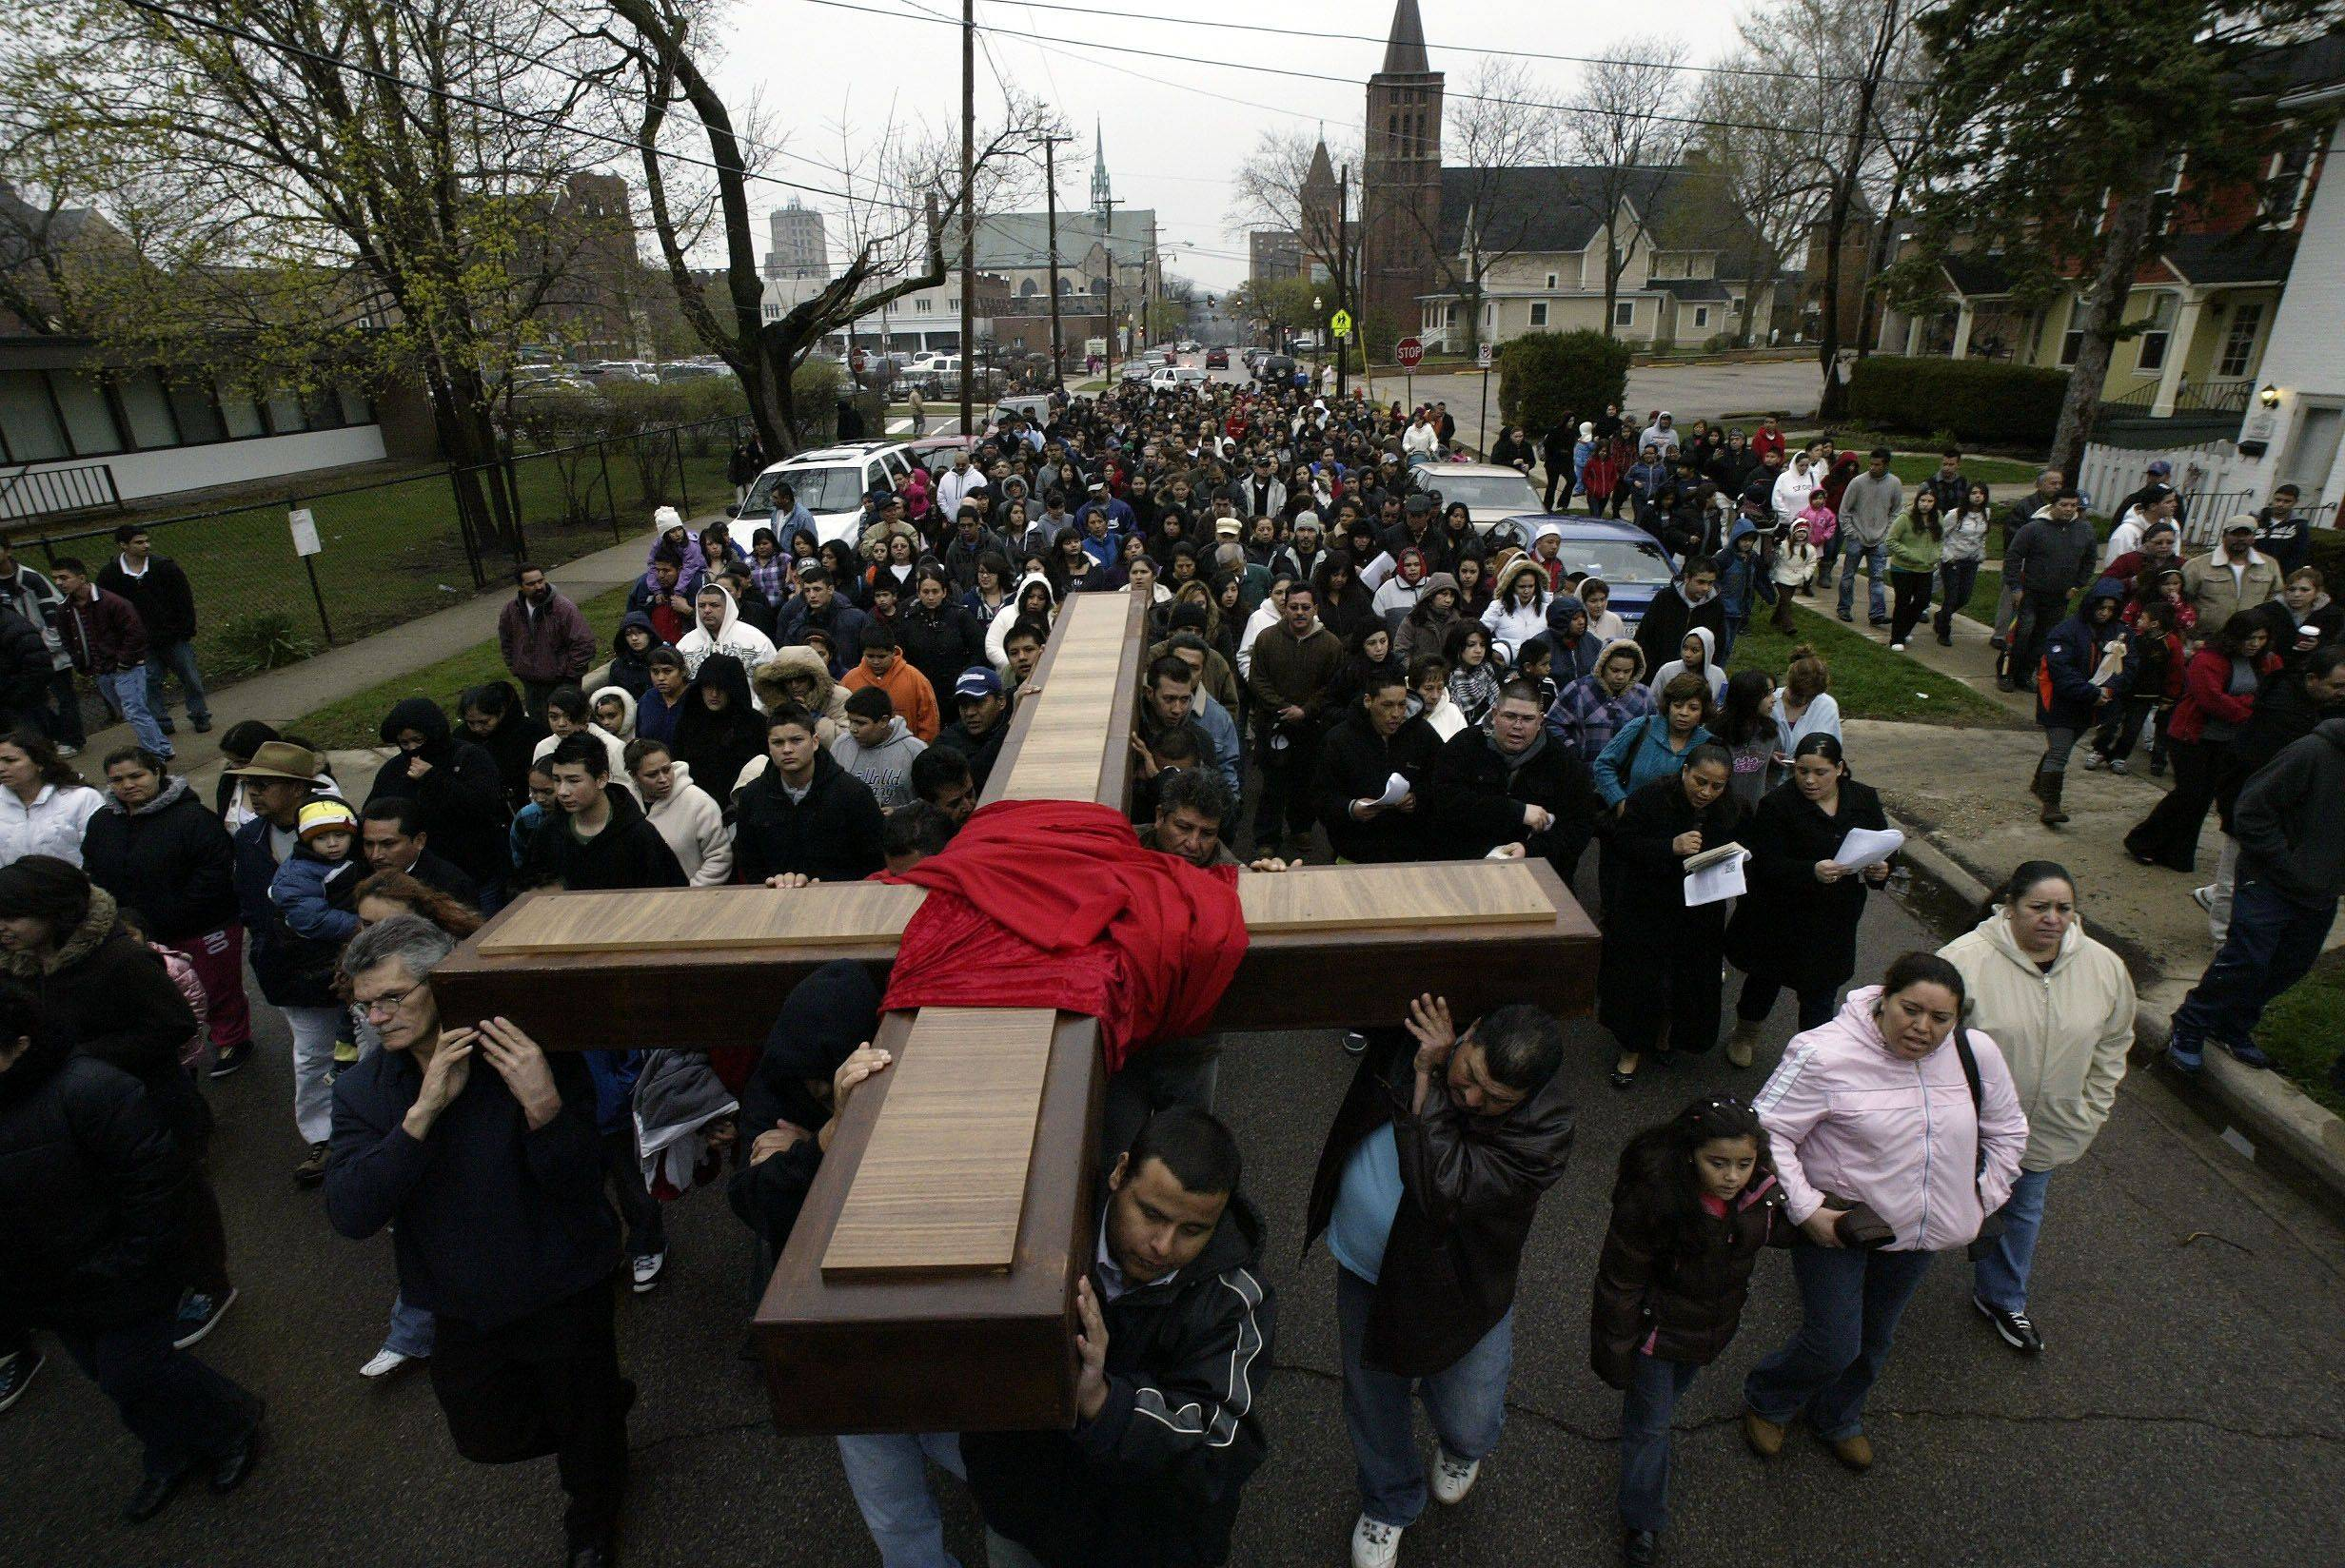 Reinaldo Sanchez of Elgin (front center) and others carry the cross Eastward along Division during St. Joseph's Passion Walk Good Friday, April 22, 2011 in Elgin.